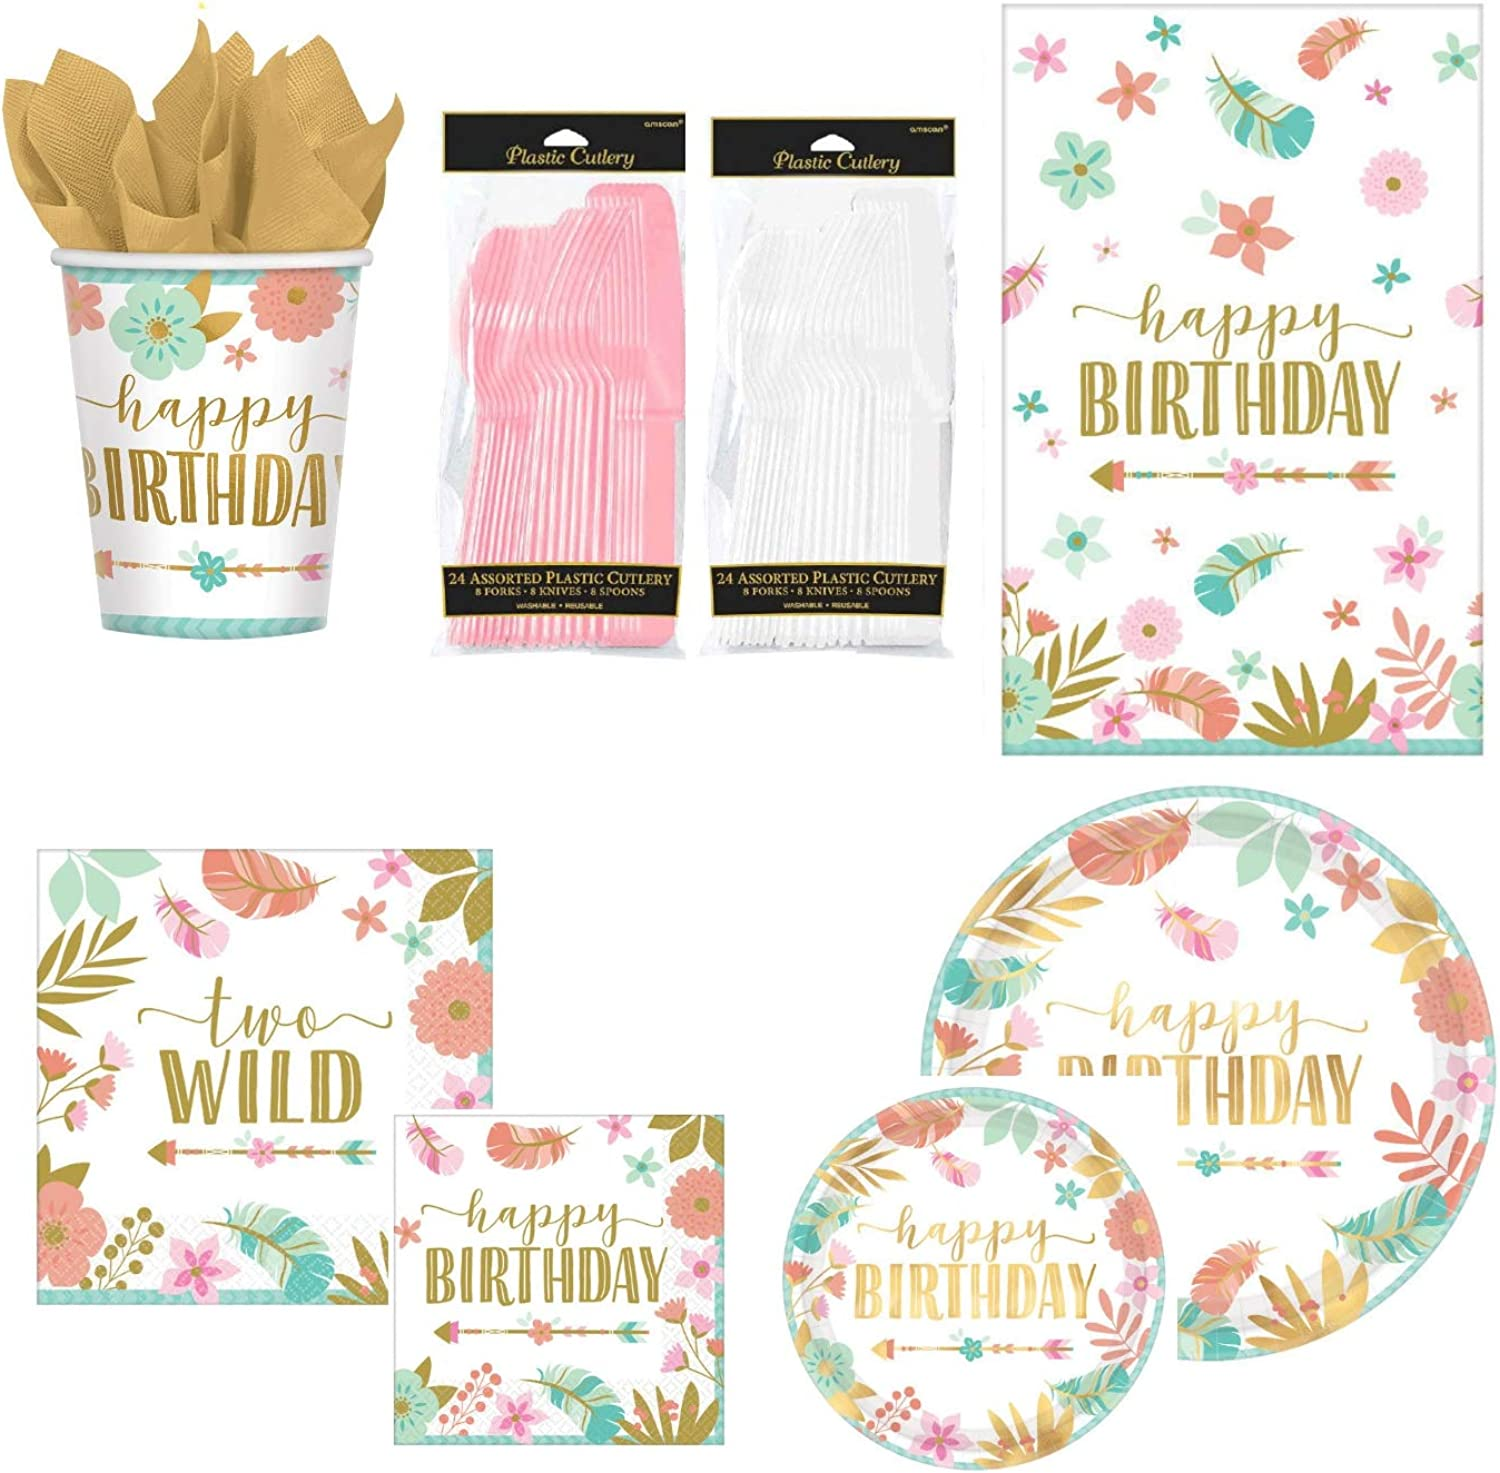 BOHO 2nd Birthday Party Supplies Pack For 16 Guests Baby Girl Two Wild Theme Standard ParteePak Fa268a